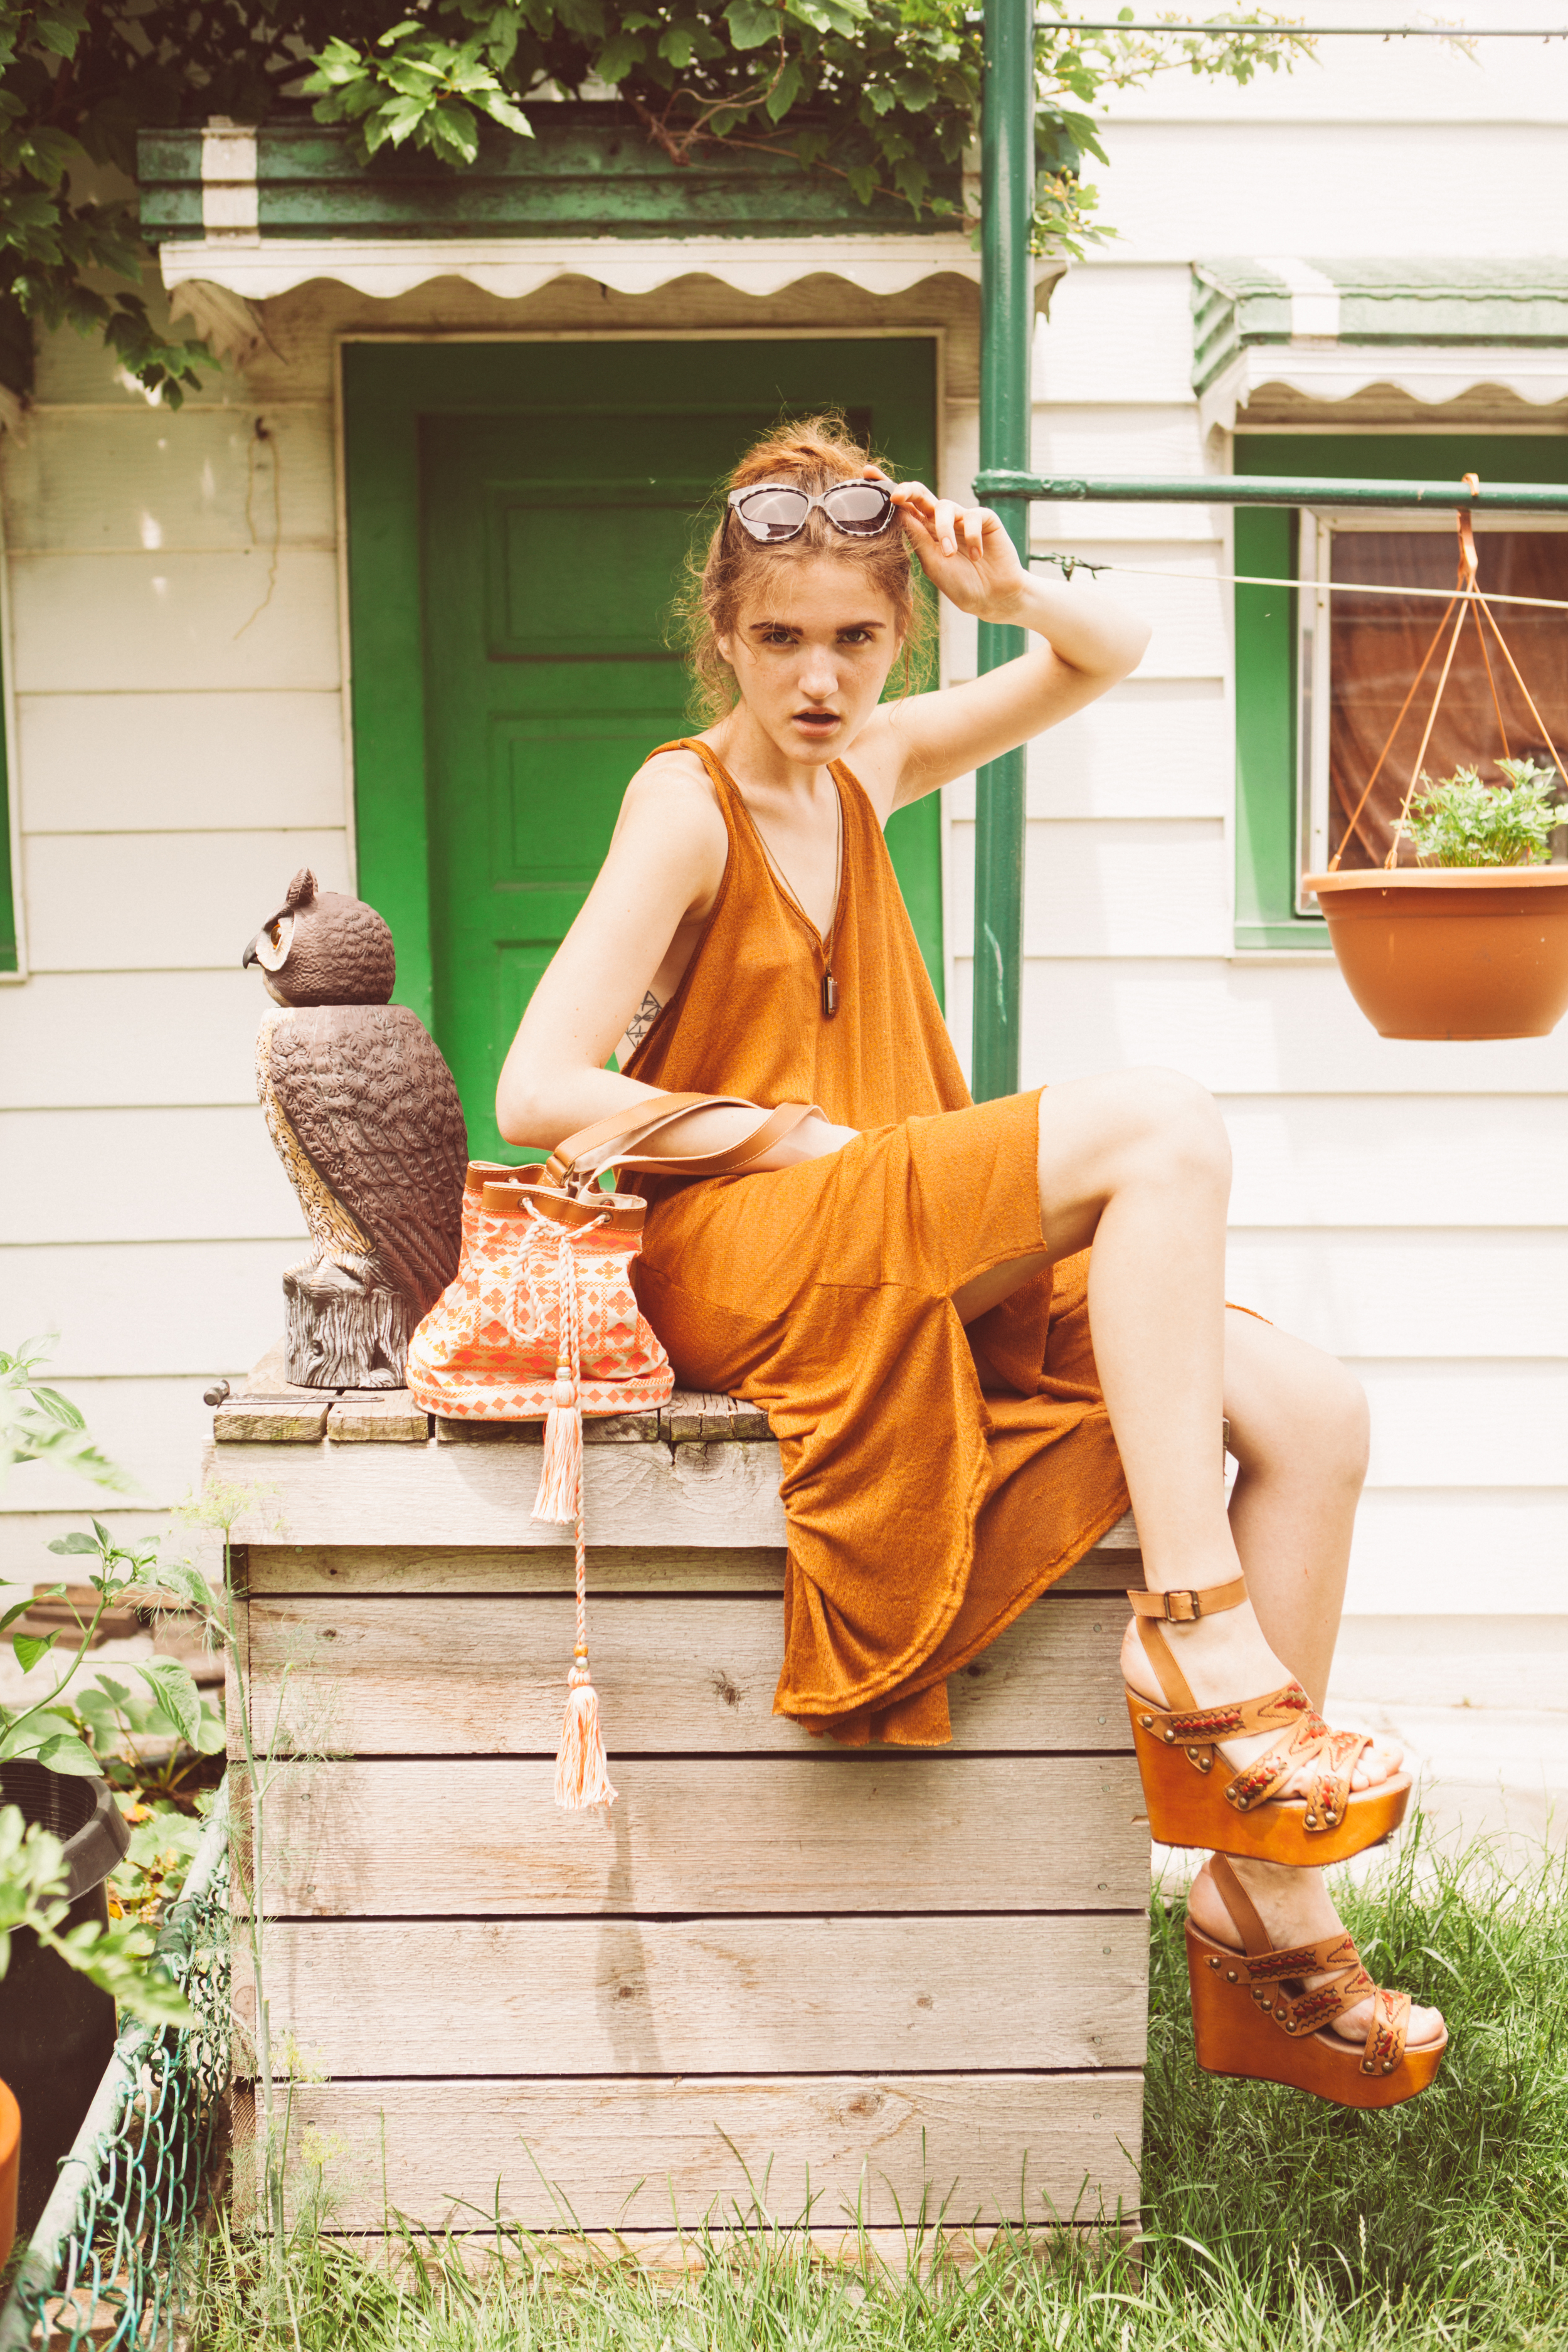 Chicago Backyard Lifestyle Photography Session by The Finches